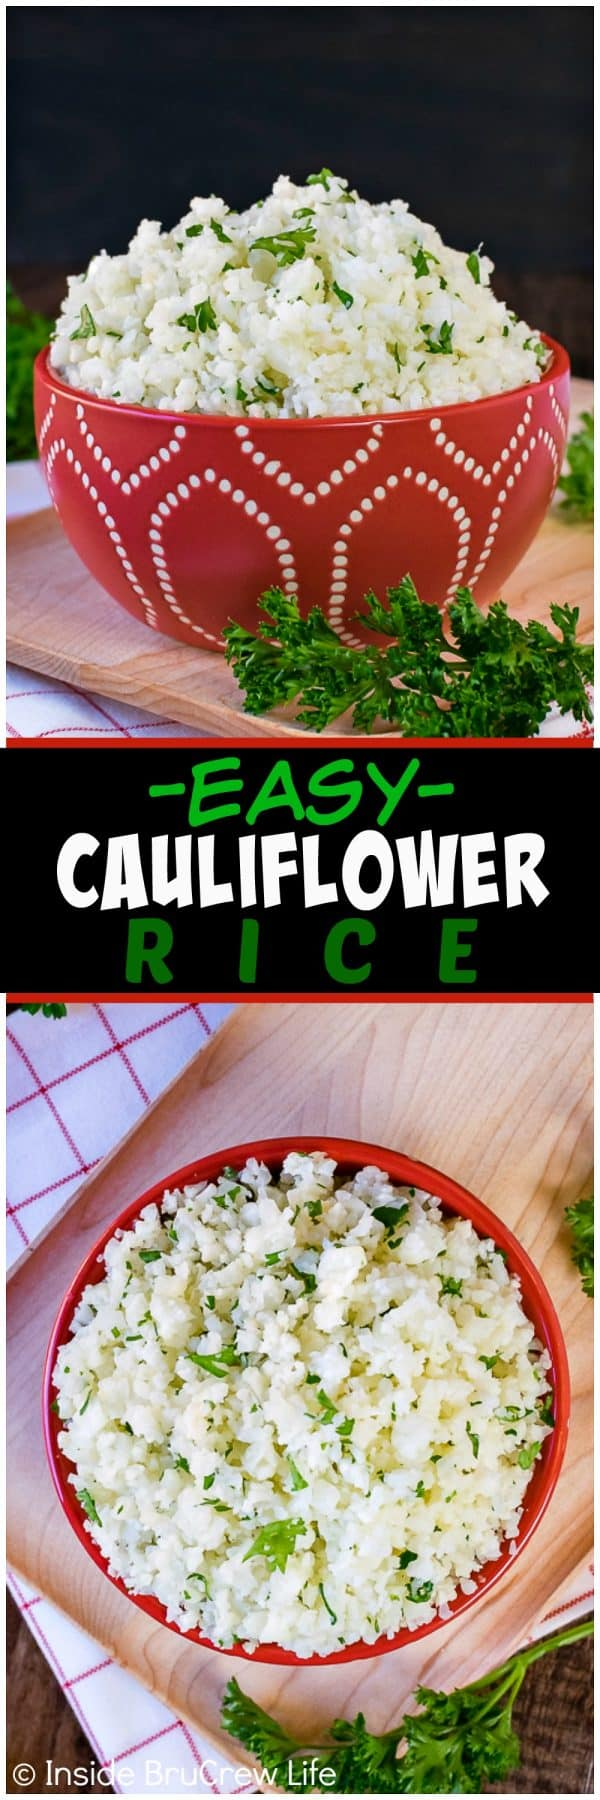 Easy Cauliflower Rice - a head of cauliflower can be shredded and cooked to look and taste like rice. Easy recipe to use in healthy dinners!